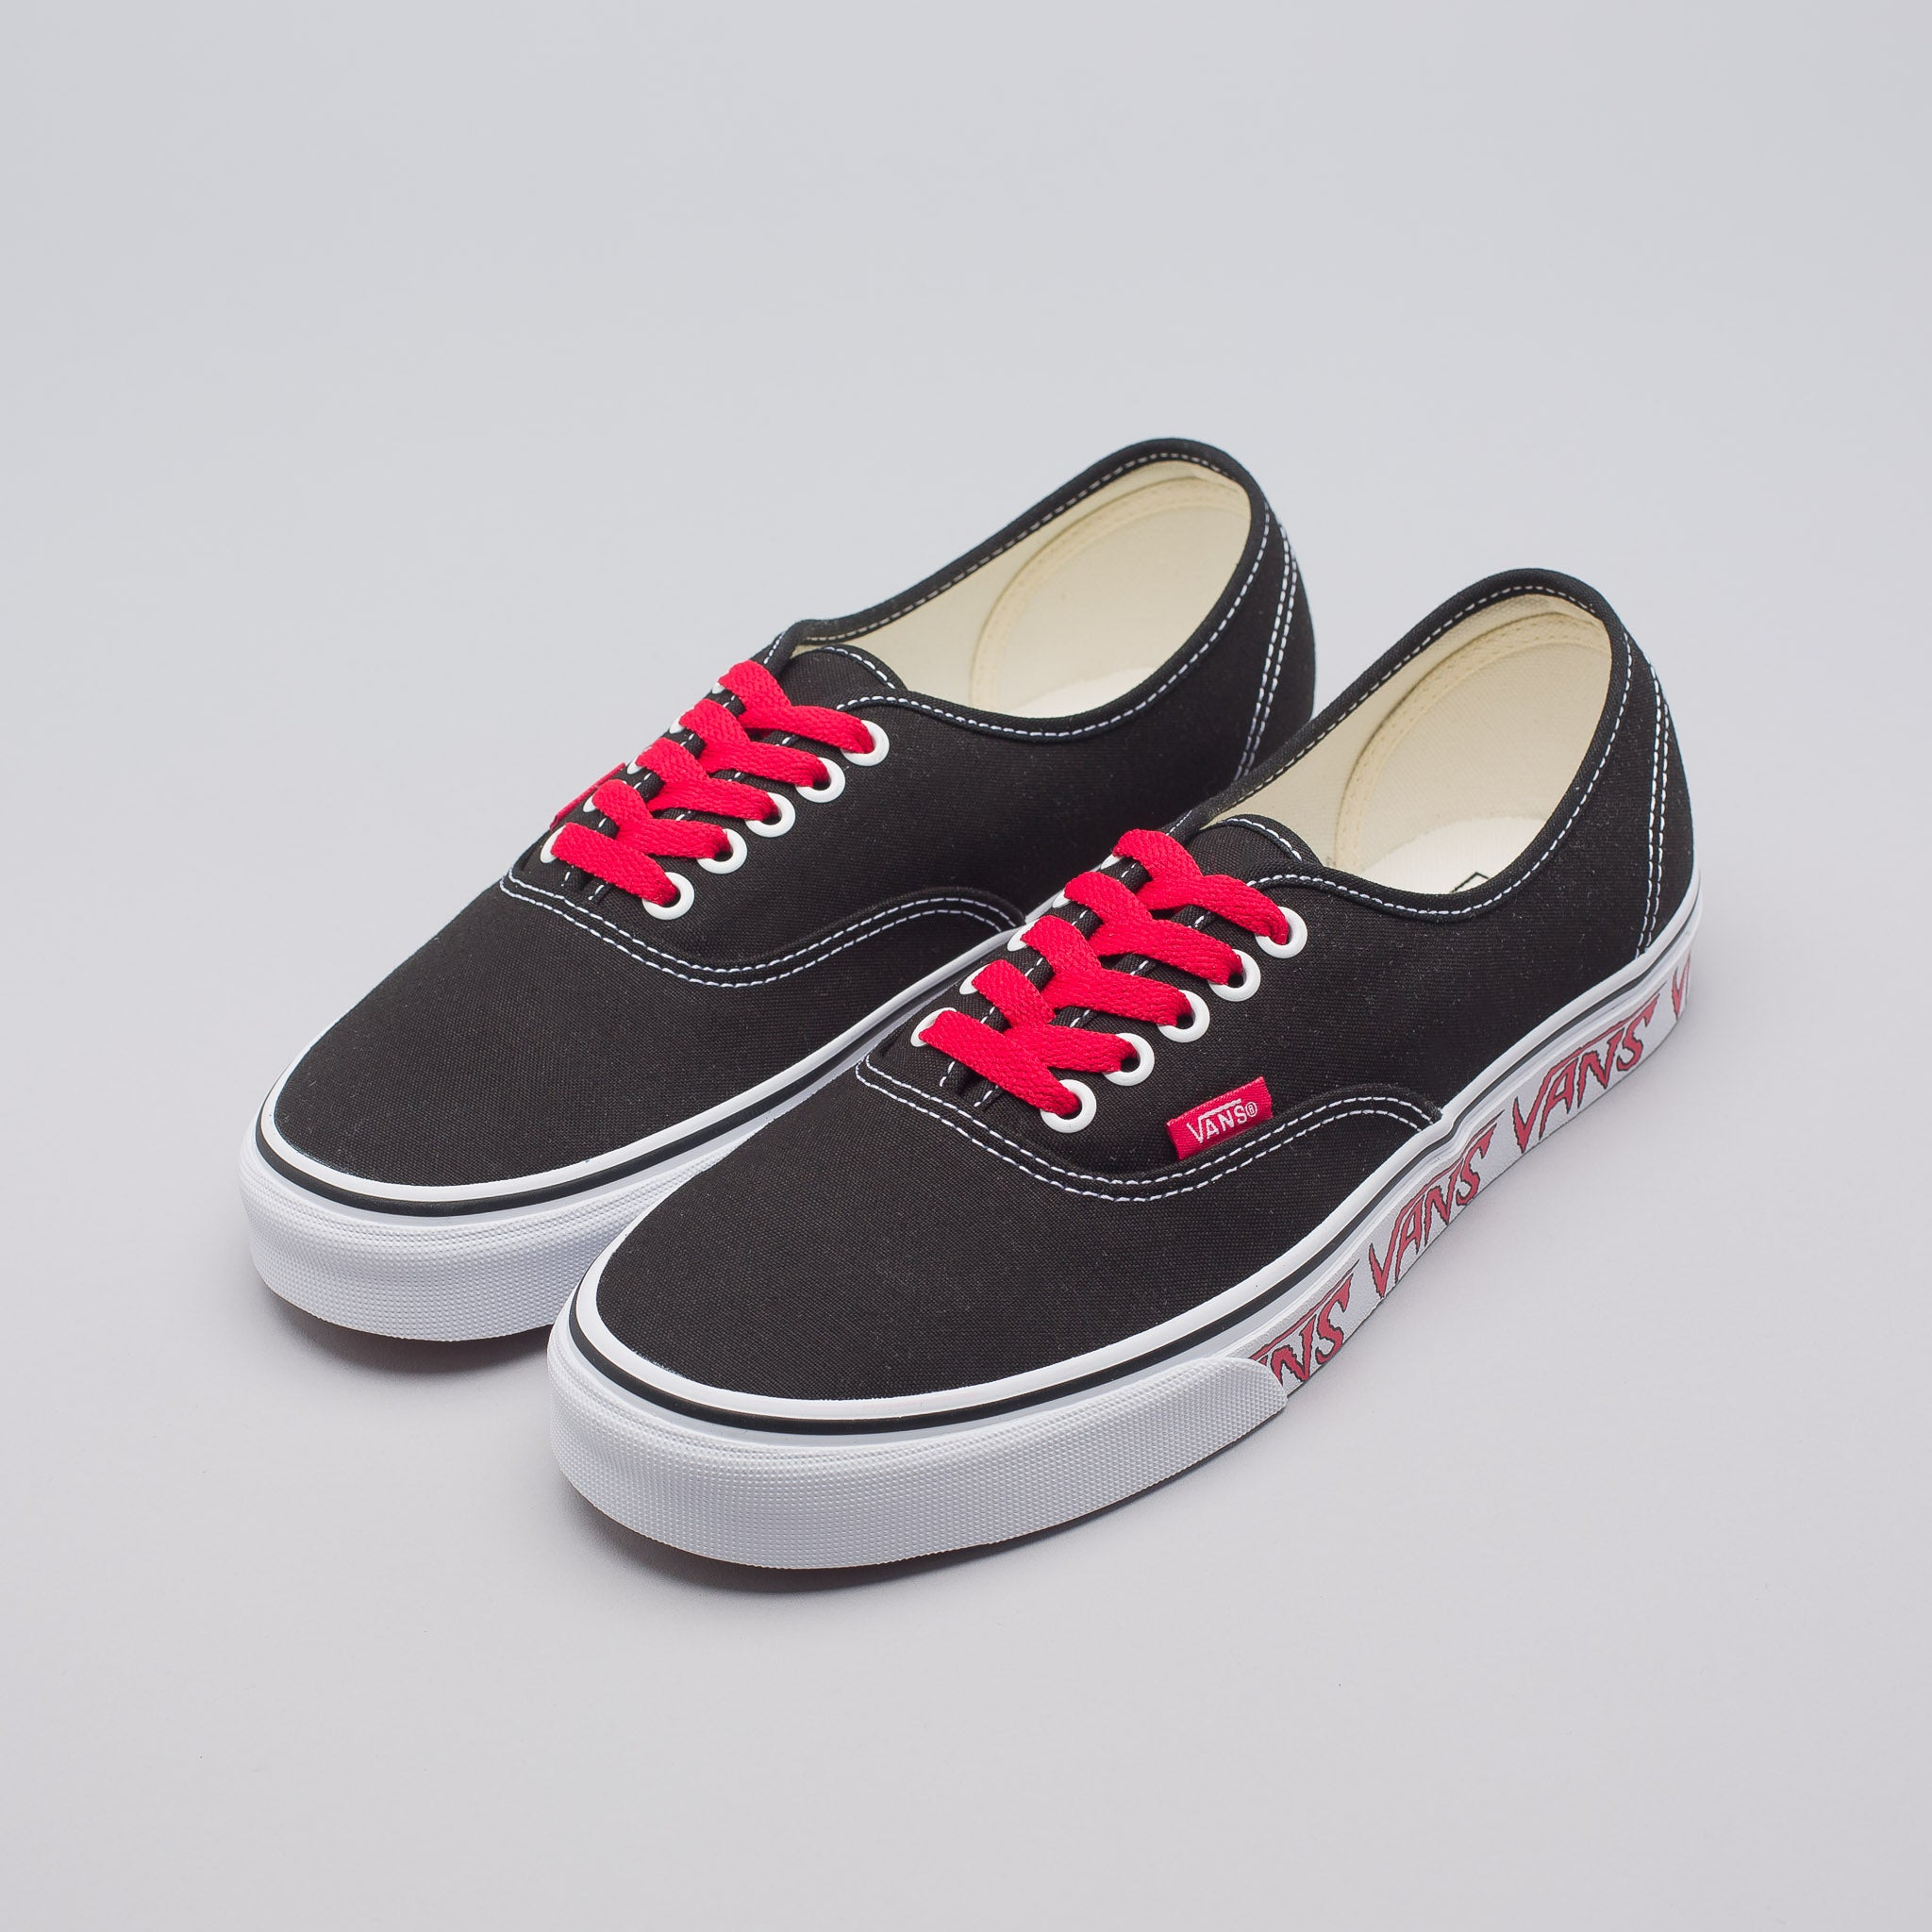 Authentic Sketch Sidewall in Black